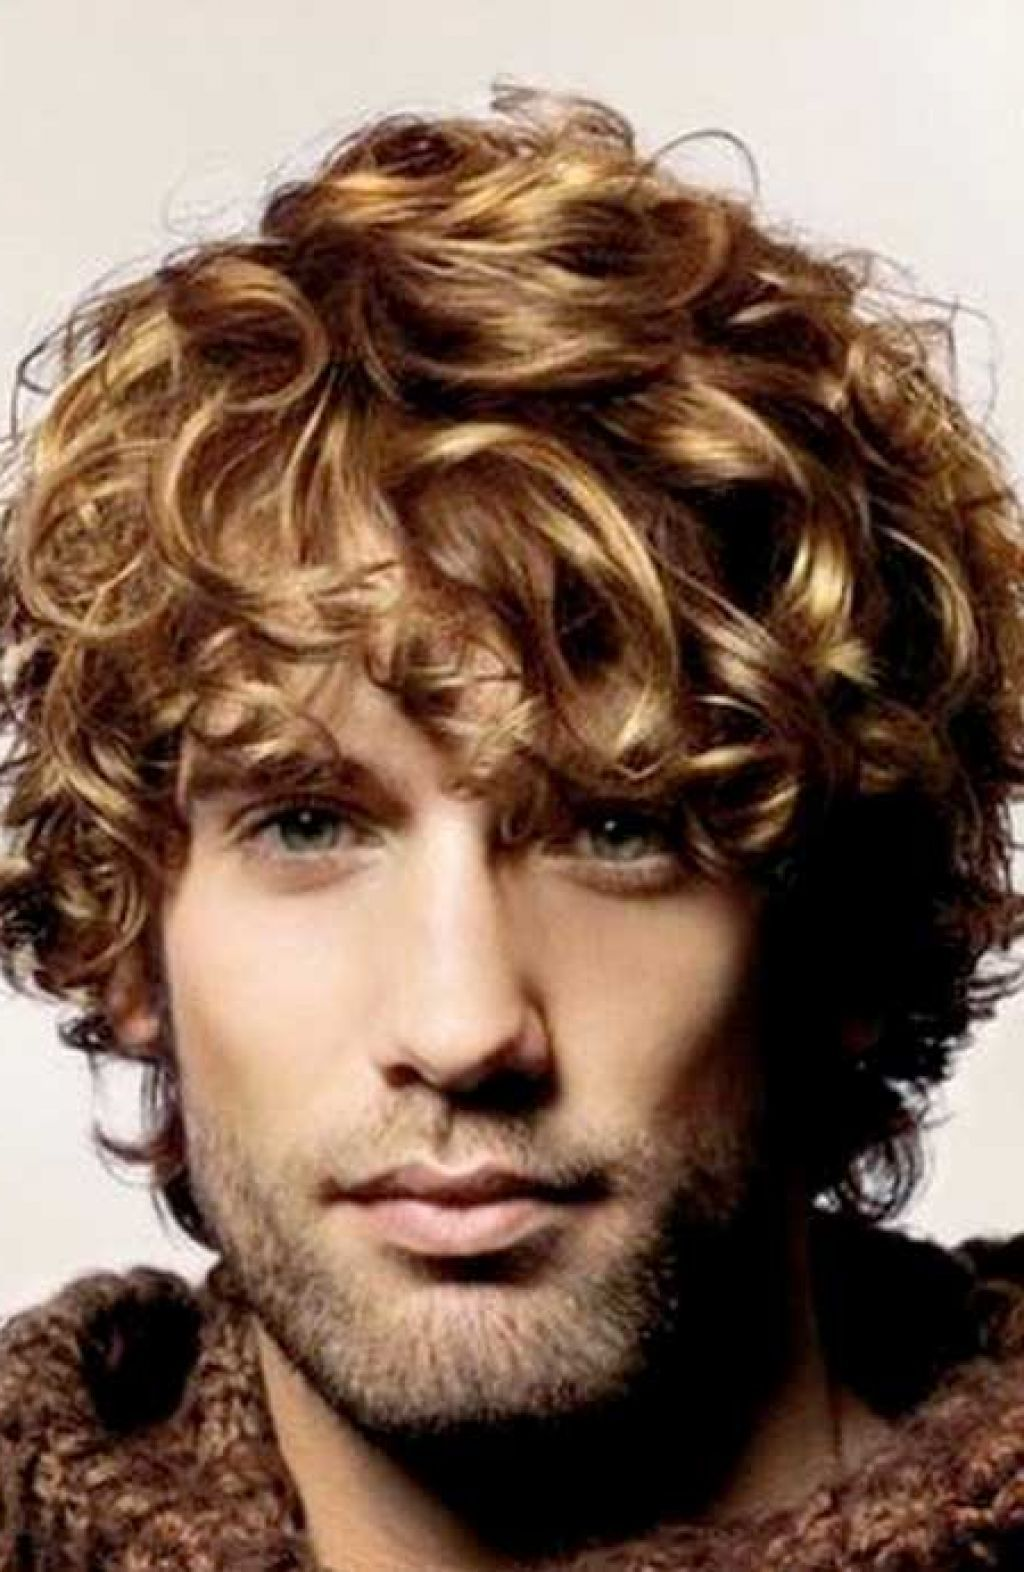 Medium Curly Blonde Hairstyle For Men Long Curly Hair Men Curly